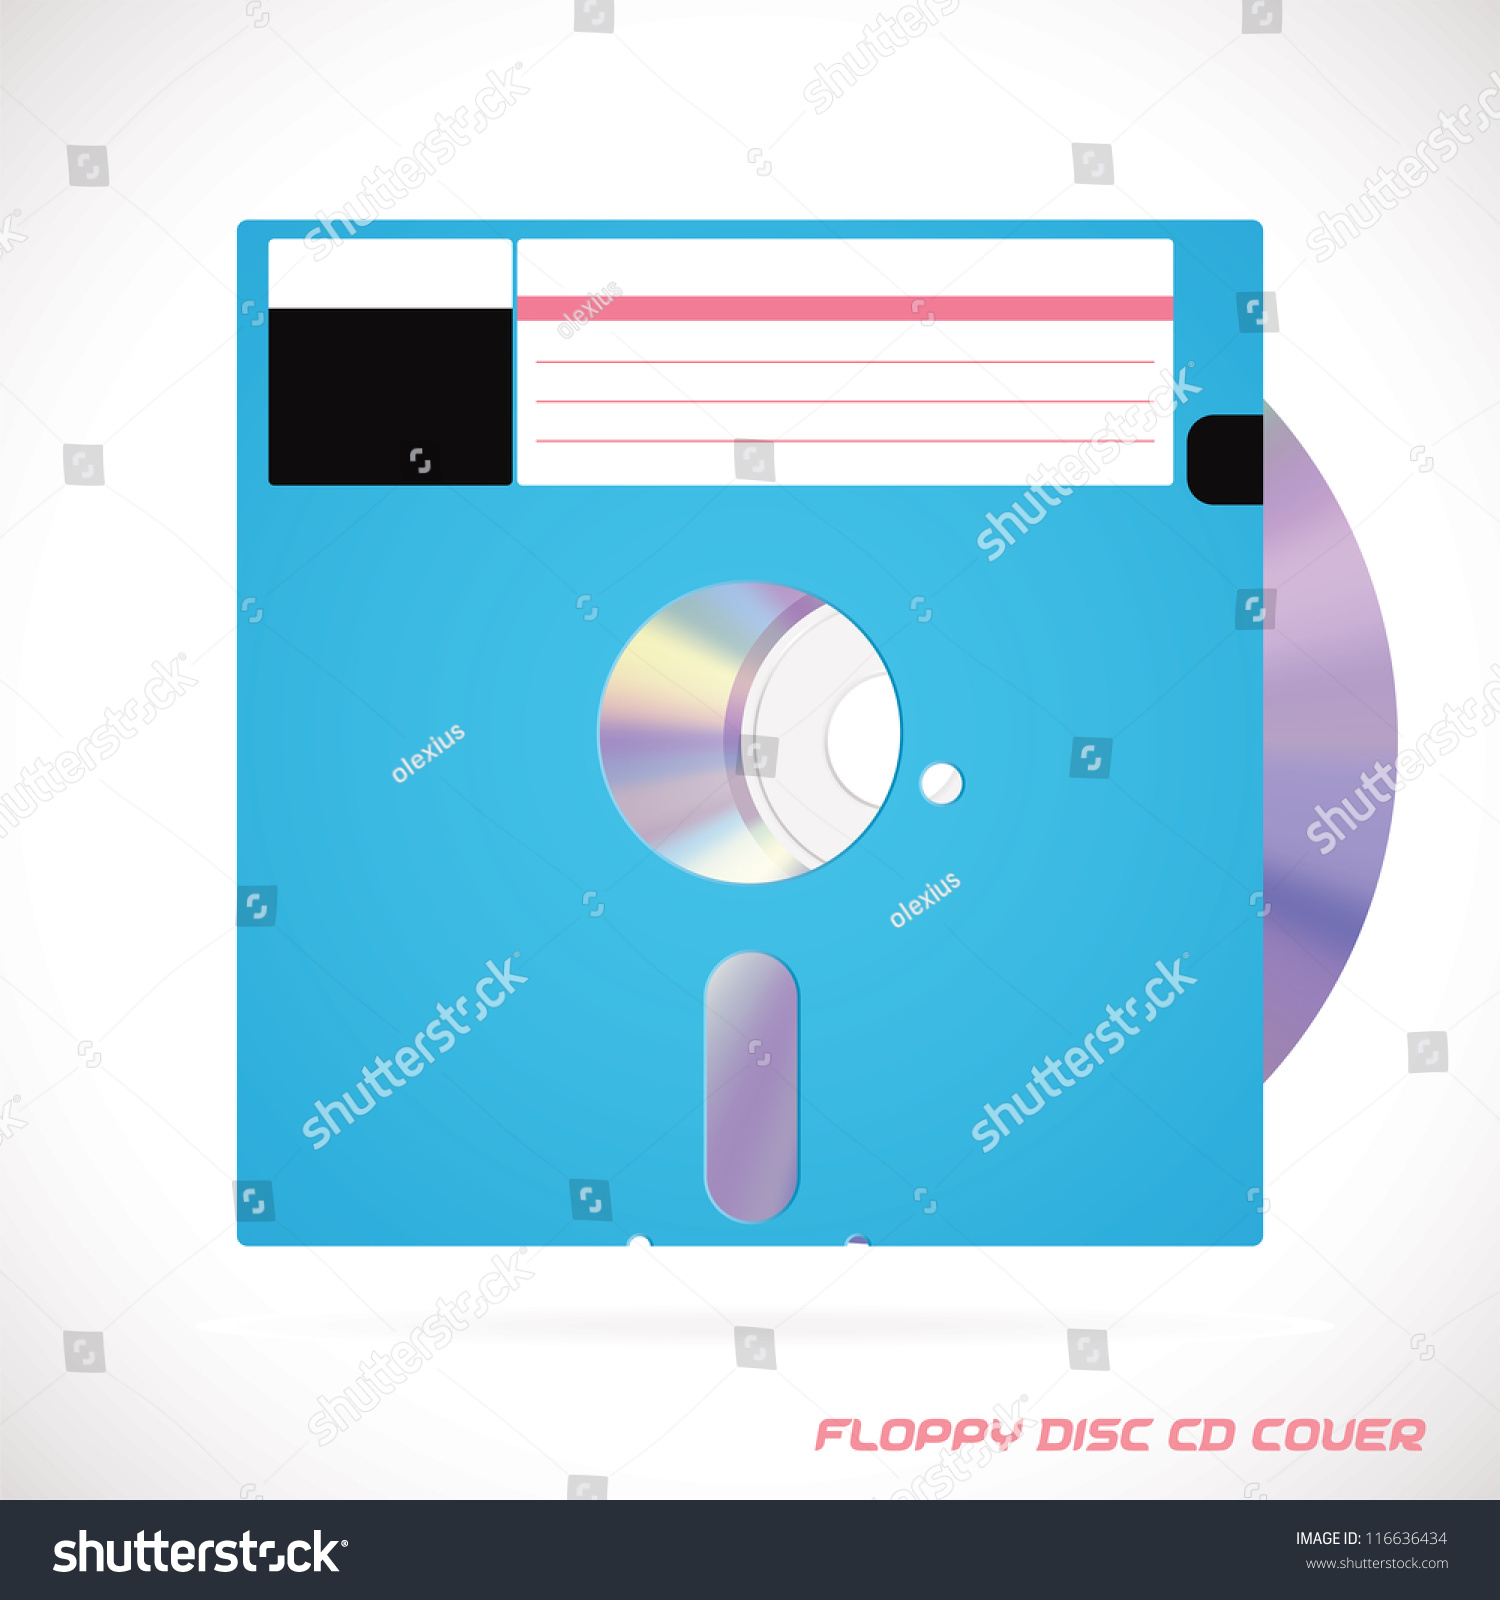 Old Fashion Floppy Disc Compact Disc Stock Vector (Royalty Free